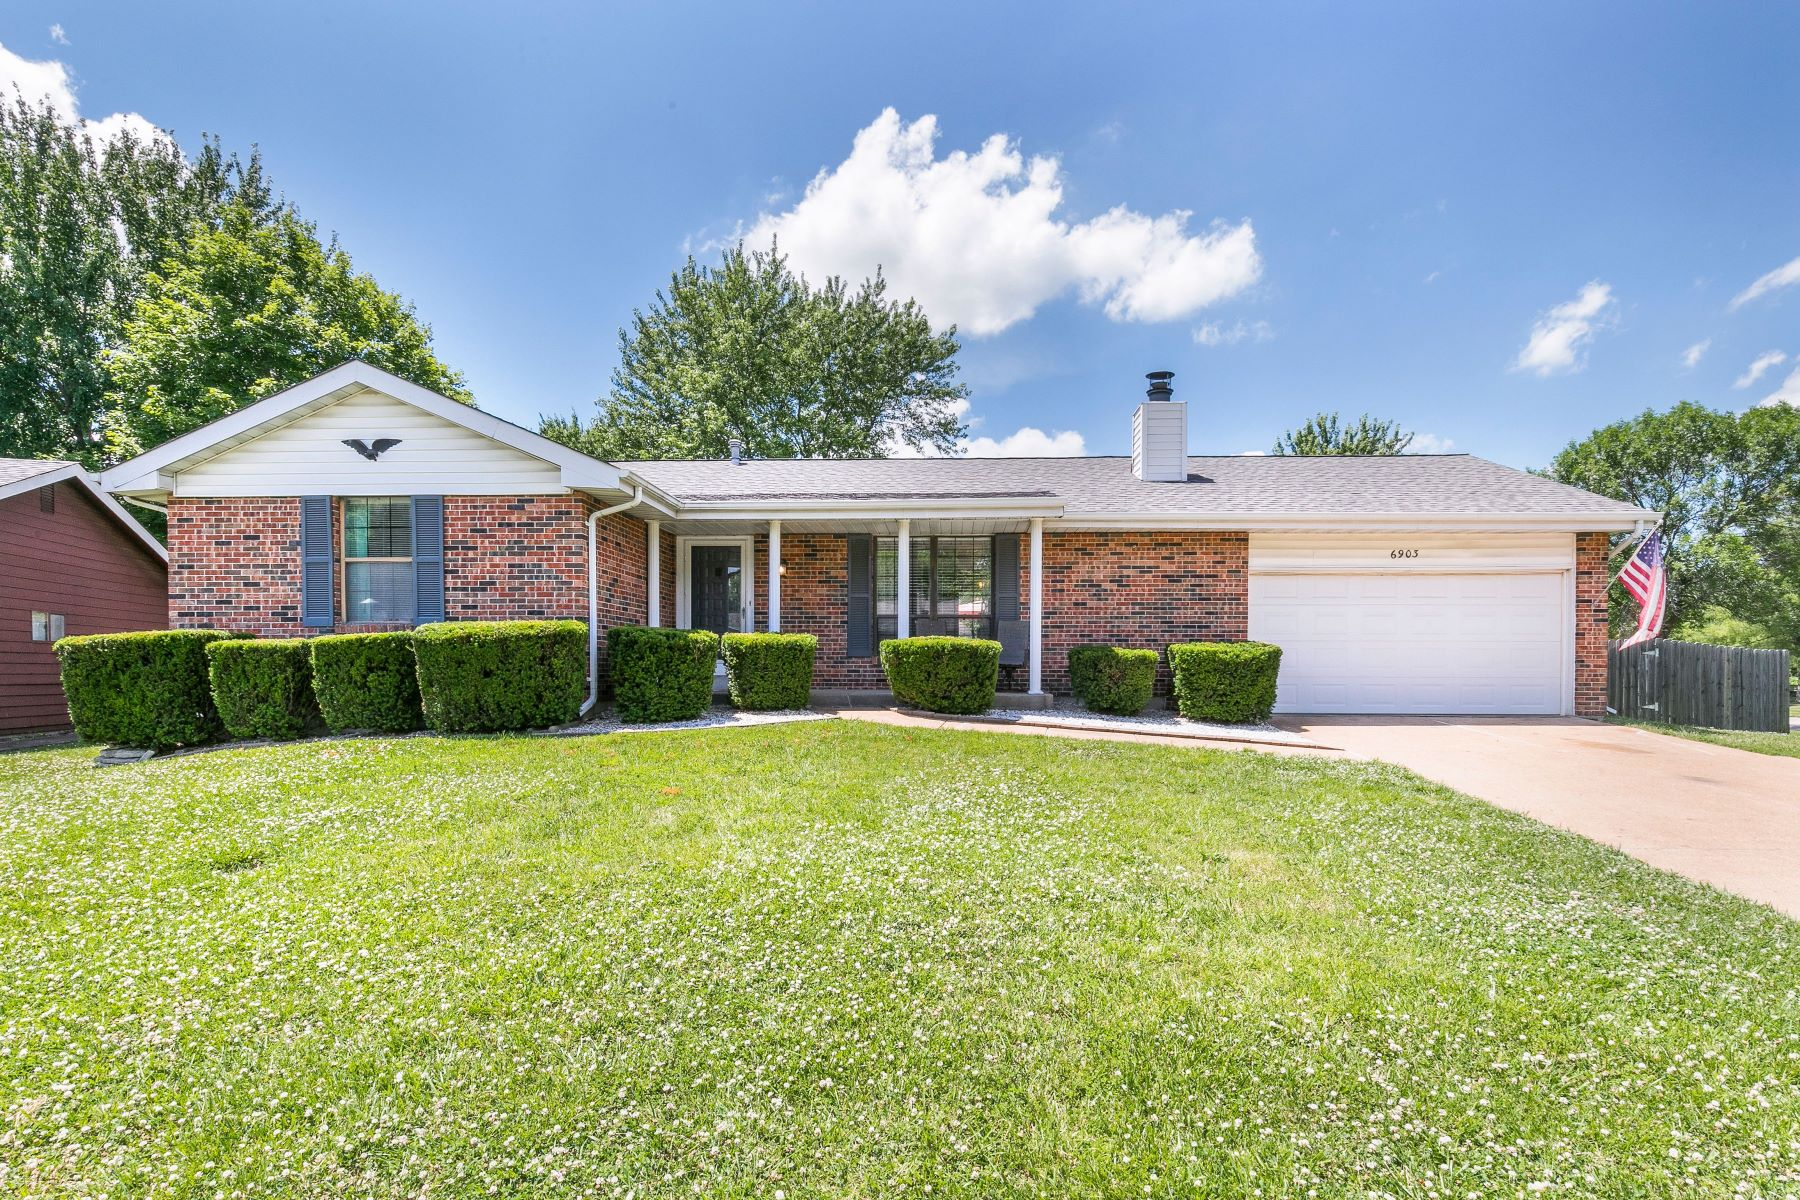 Single Family Homes for Sale at Stylish Oakville Ranch 6903 Cottage Grove Lane St. Louis, Missouri 63129 United States